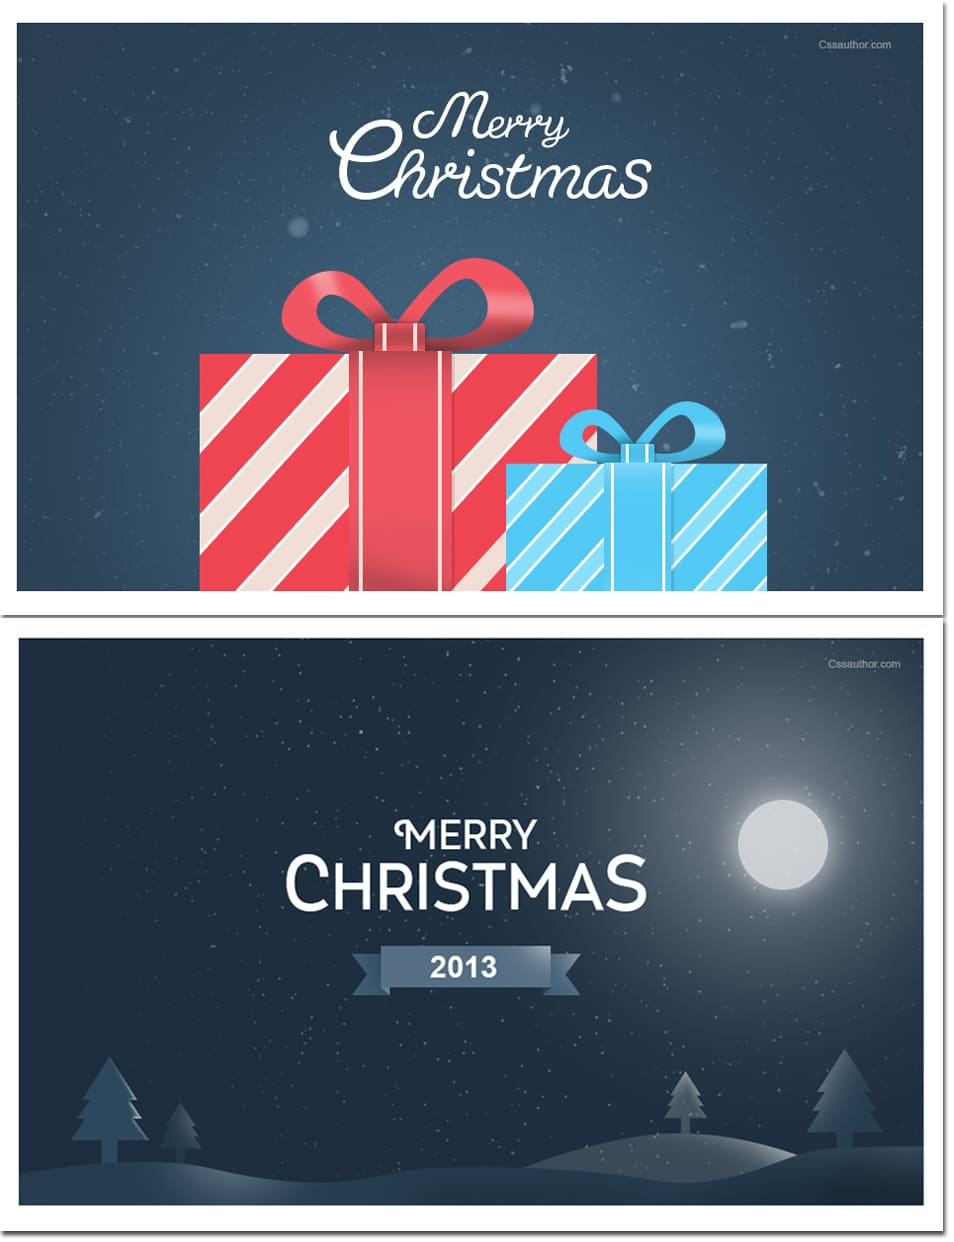 Free Christmas Greeting Cards PSD